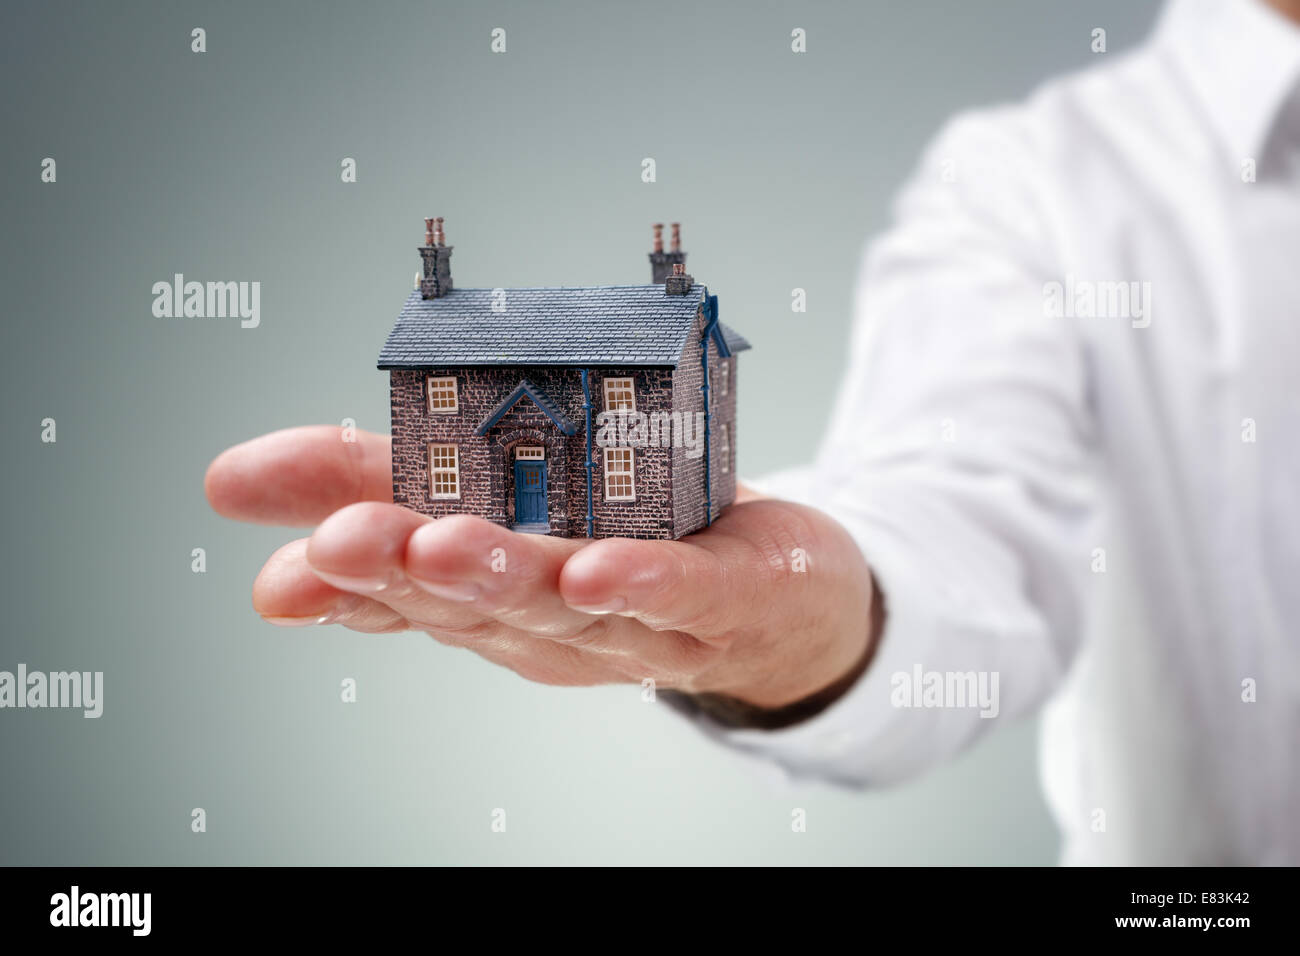 Immobilier Photo Stock